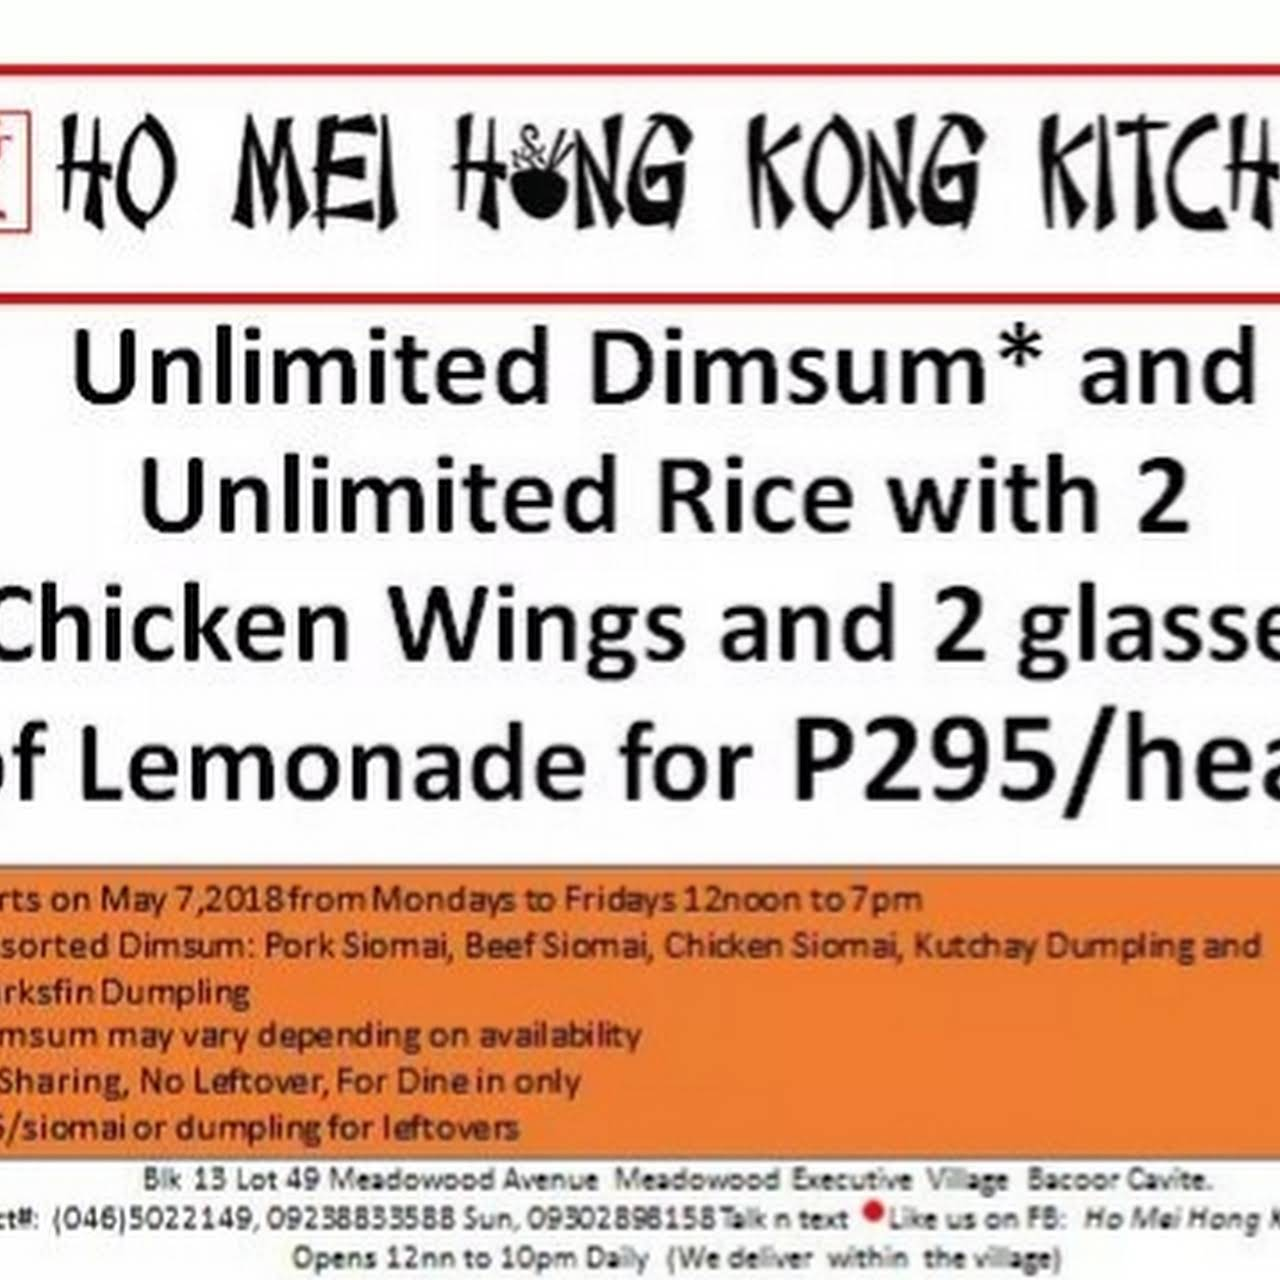 Ho Mei Hong Kong Kitchen - Chinese restaurant in Bacoor City